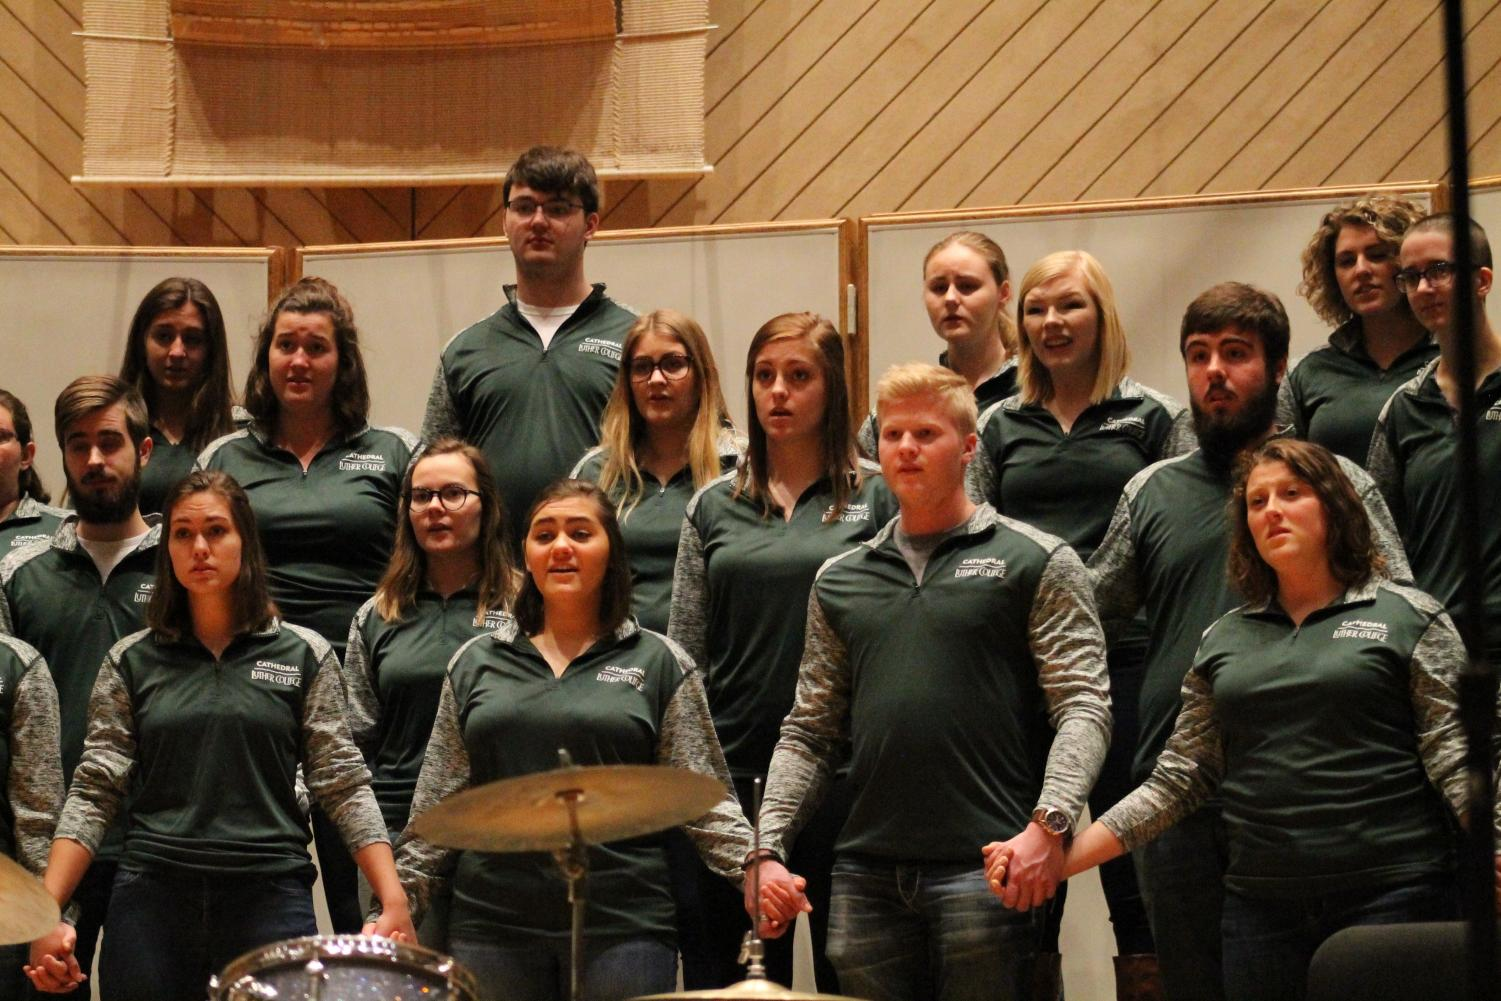 Cathedral Choir recorded four songs for Minnesota Public Radio's Bring the Sing event.